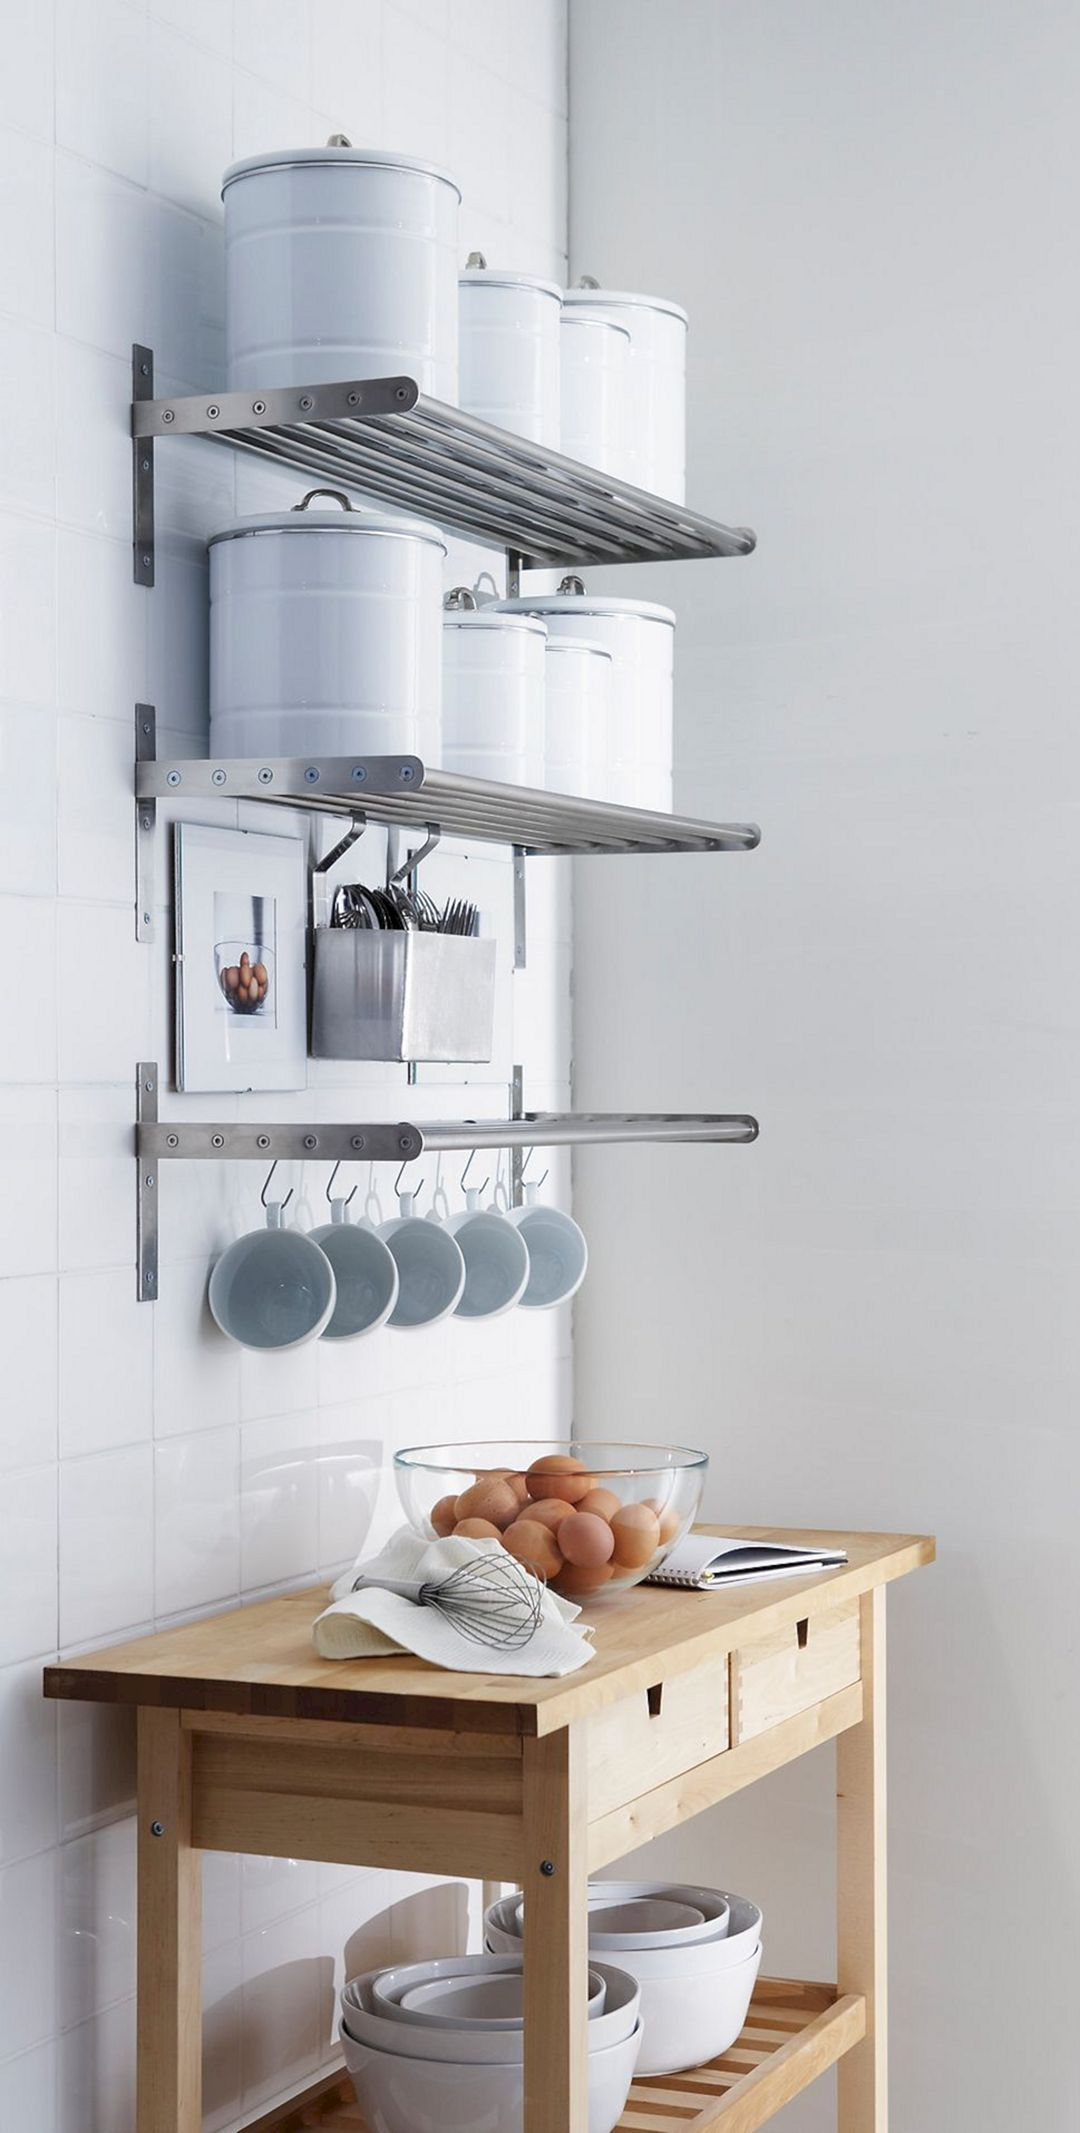 pin effable object house goals kitchen wall storage floating shelves ikea mounted cart espresso french cleat tool holders glass shelf mounting brackets bathroom cabinet with floor